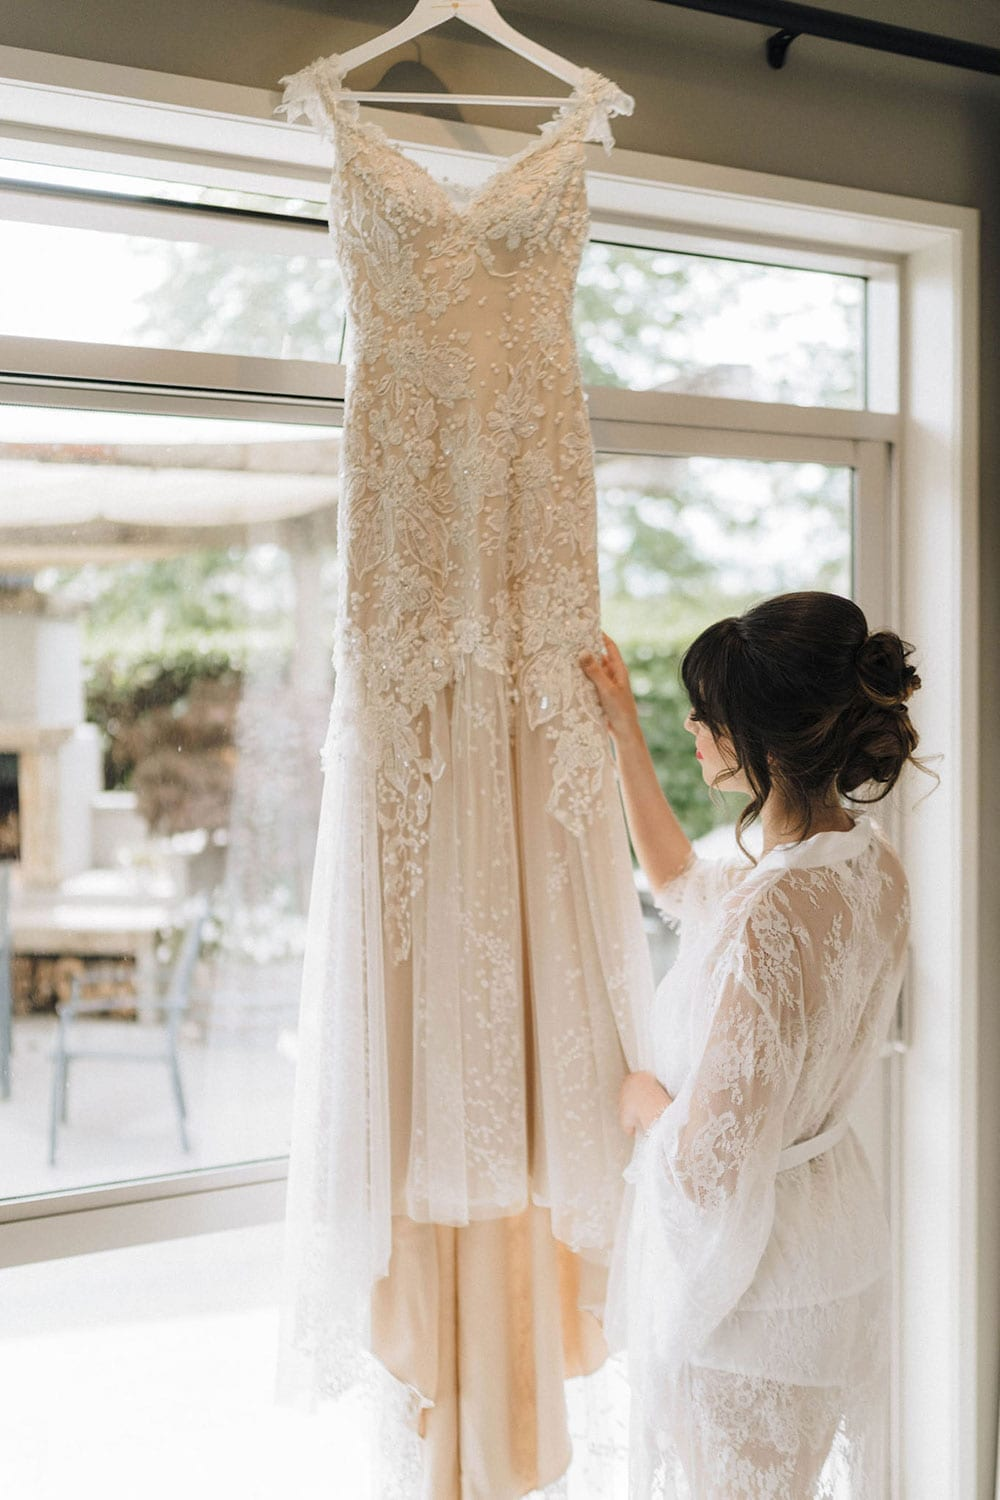 Vinka Design Features Real Weddings - bride wearing custom made beaded lace Sasha gown. Bride looks at hanging dress